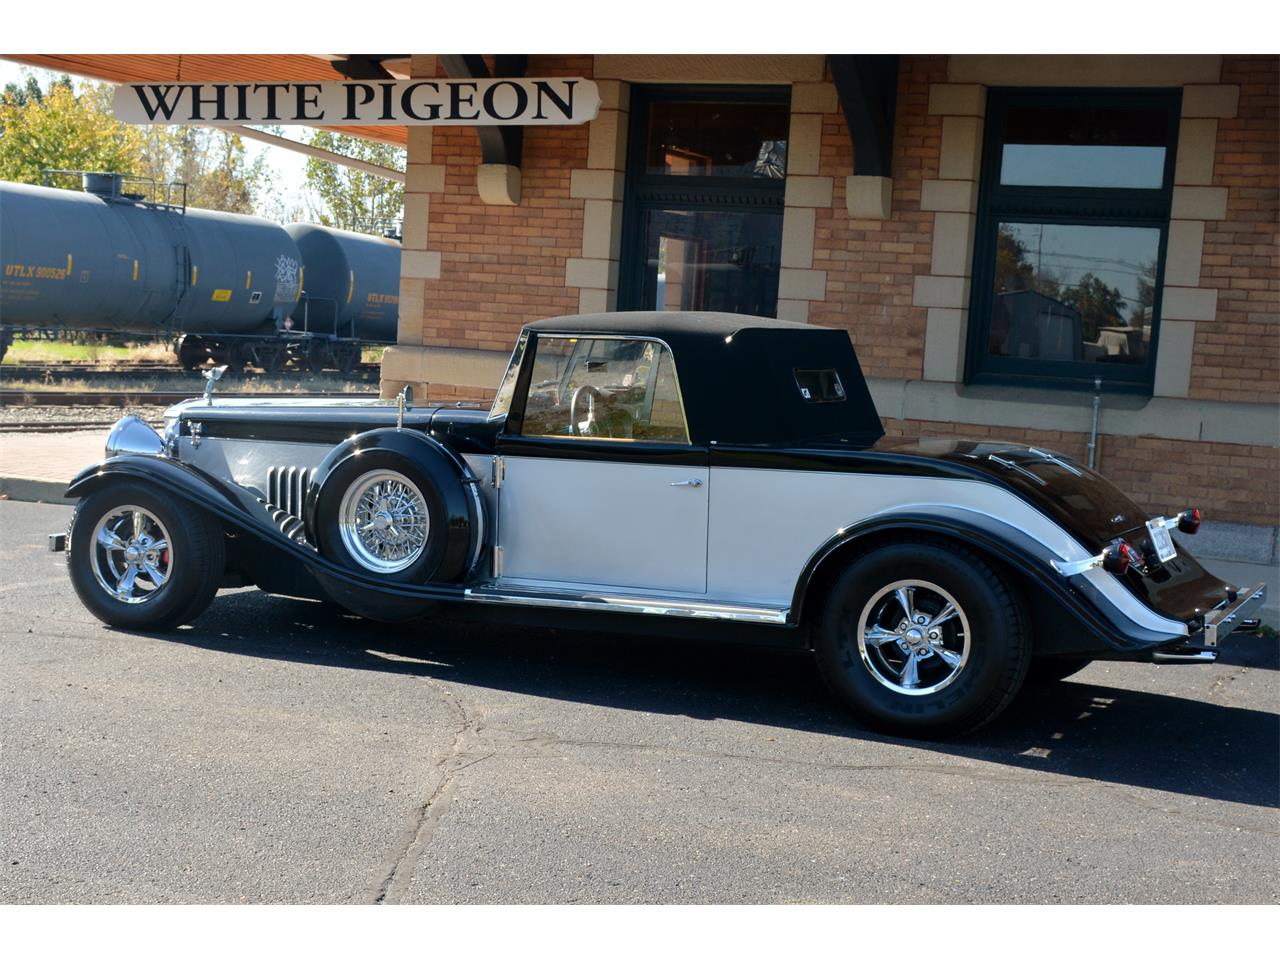 1931 Rolls-Royce Phantom II for sale in White Pigeon, MI